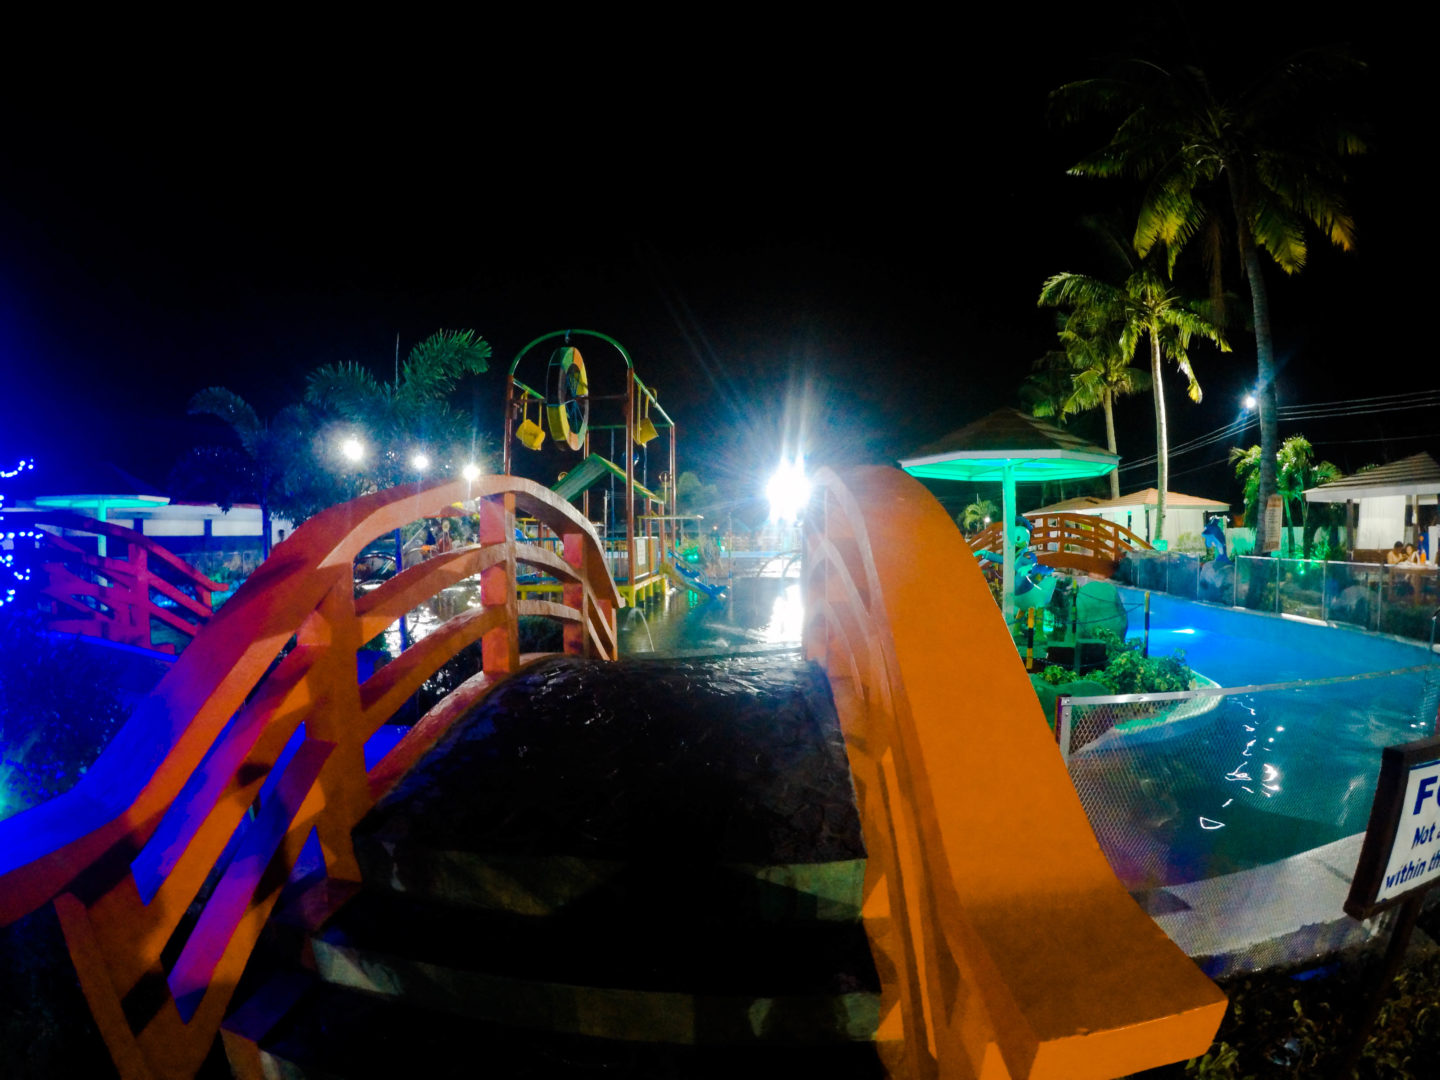 Review Coco Valley Richnez Waterpark In Cavite The